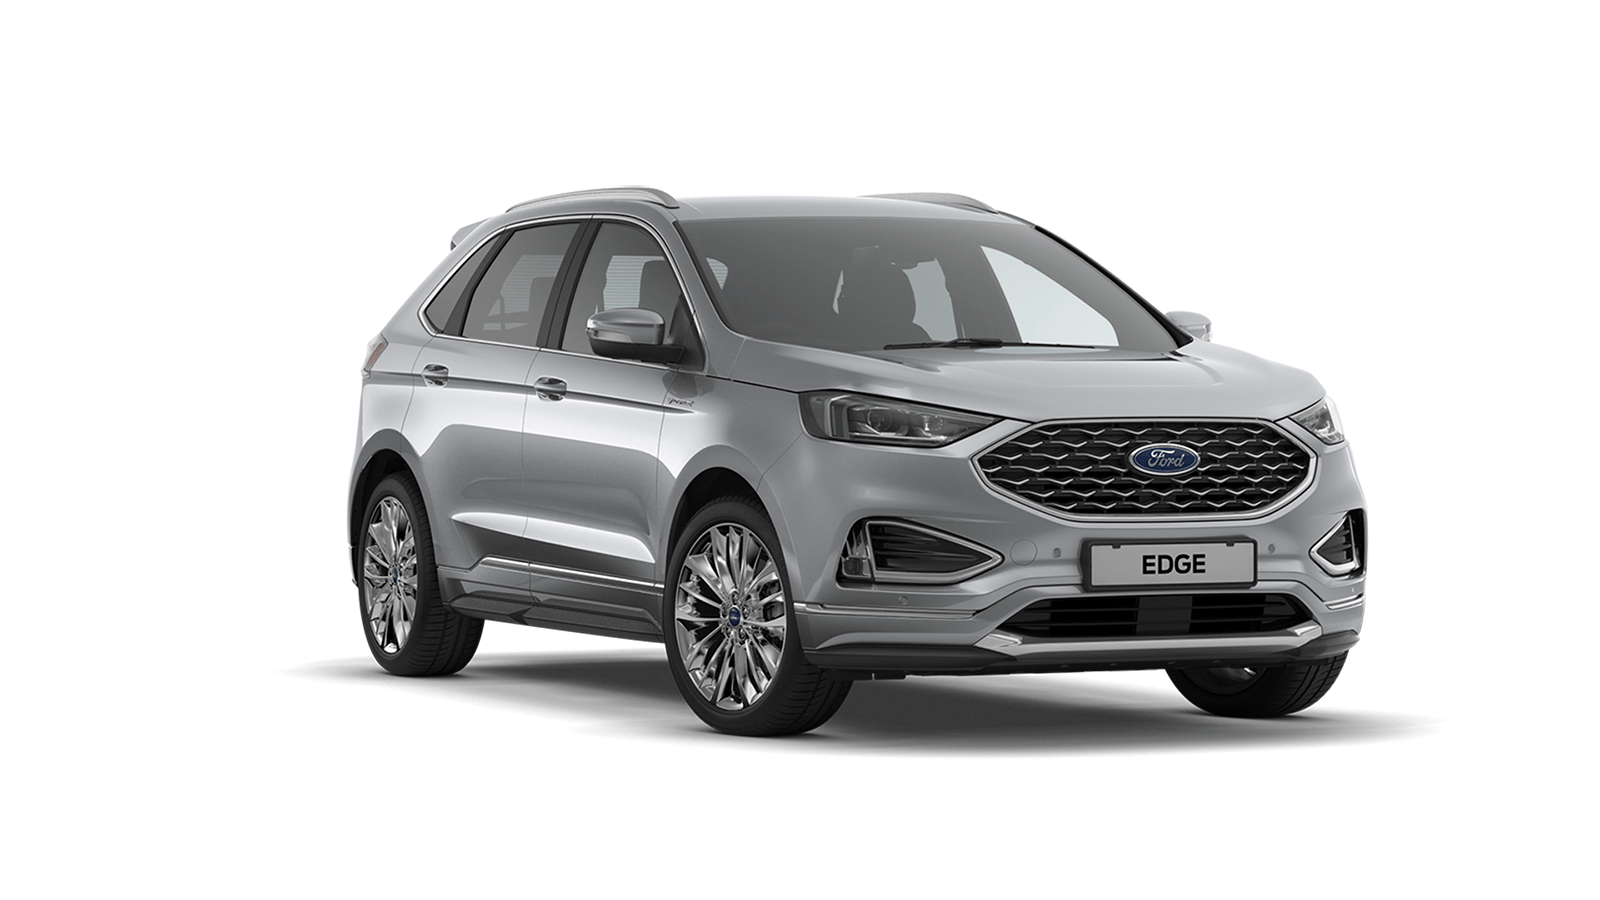 New Ford Edge at Lamberts Garage